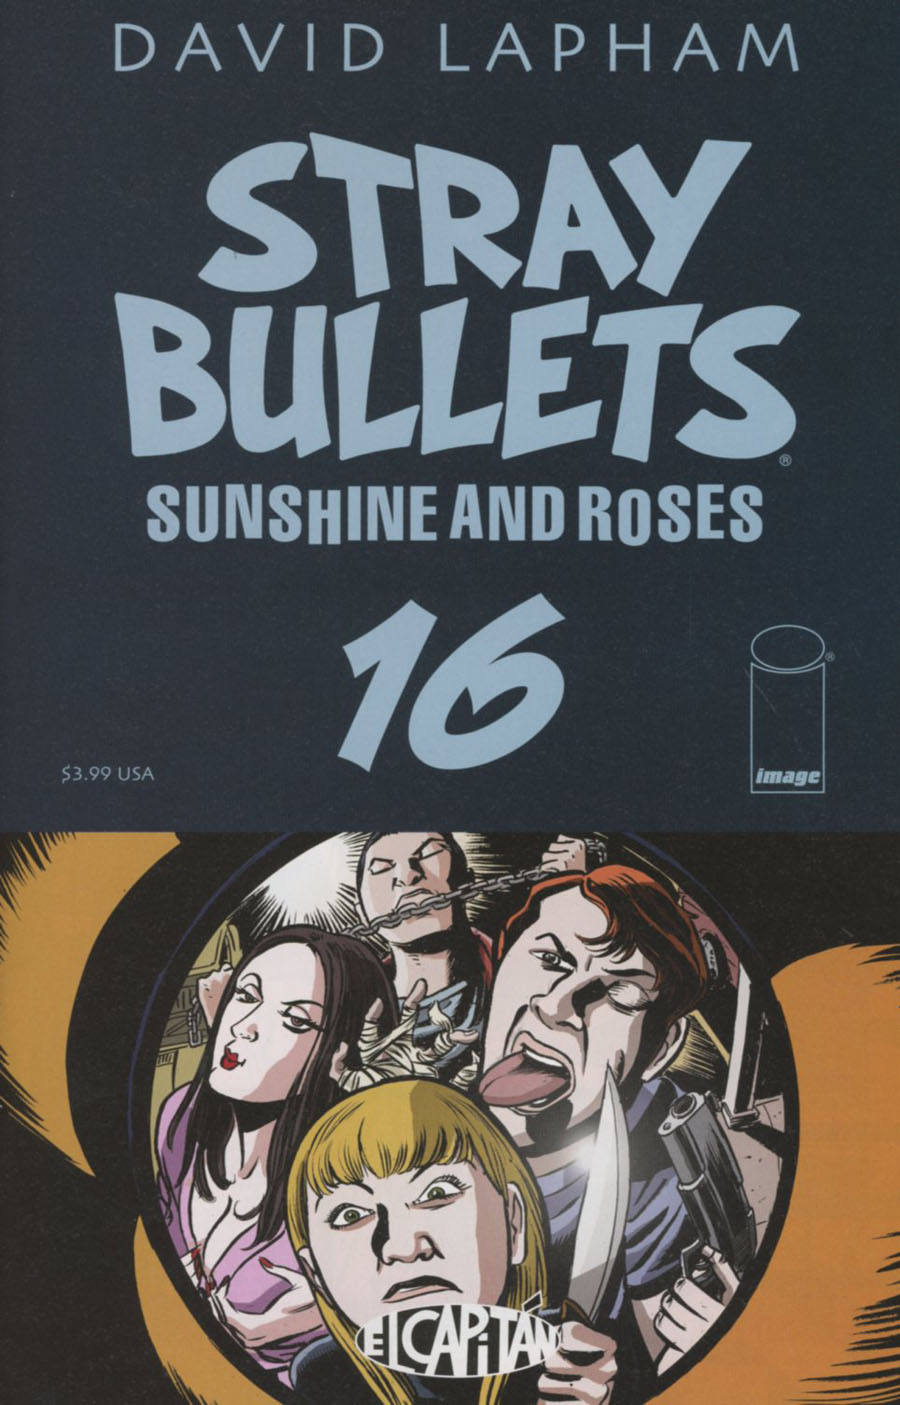 Stray Bullets Sunshine And Roses #16